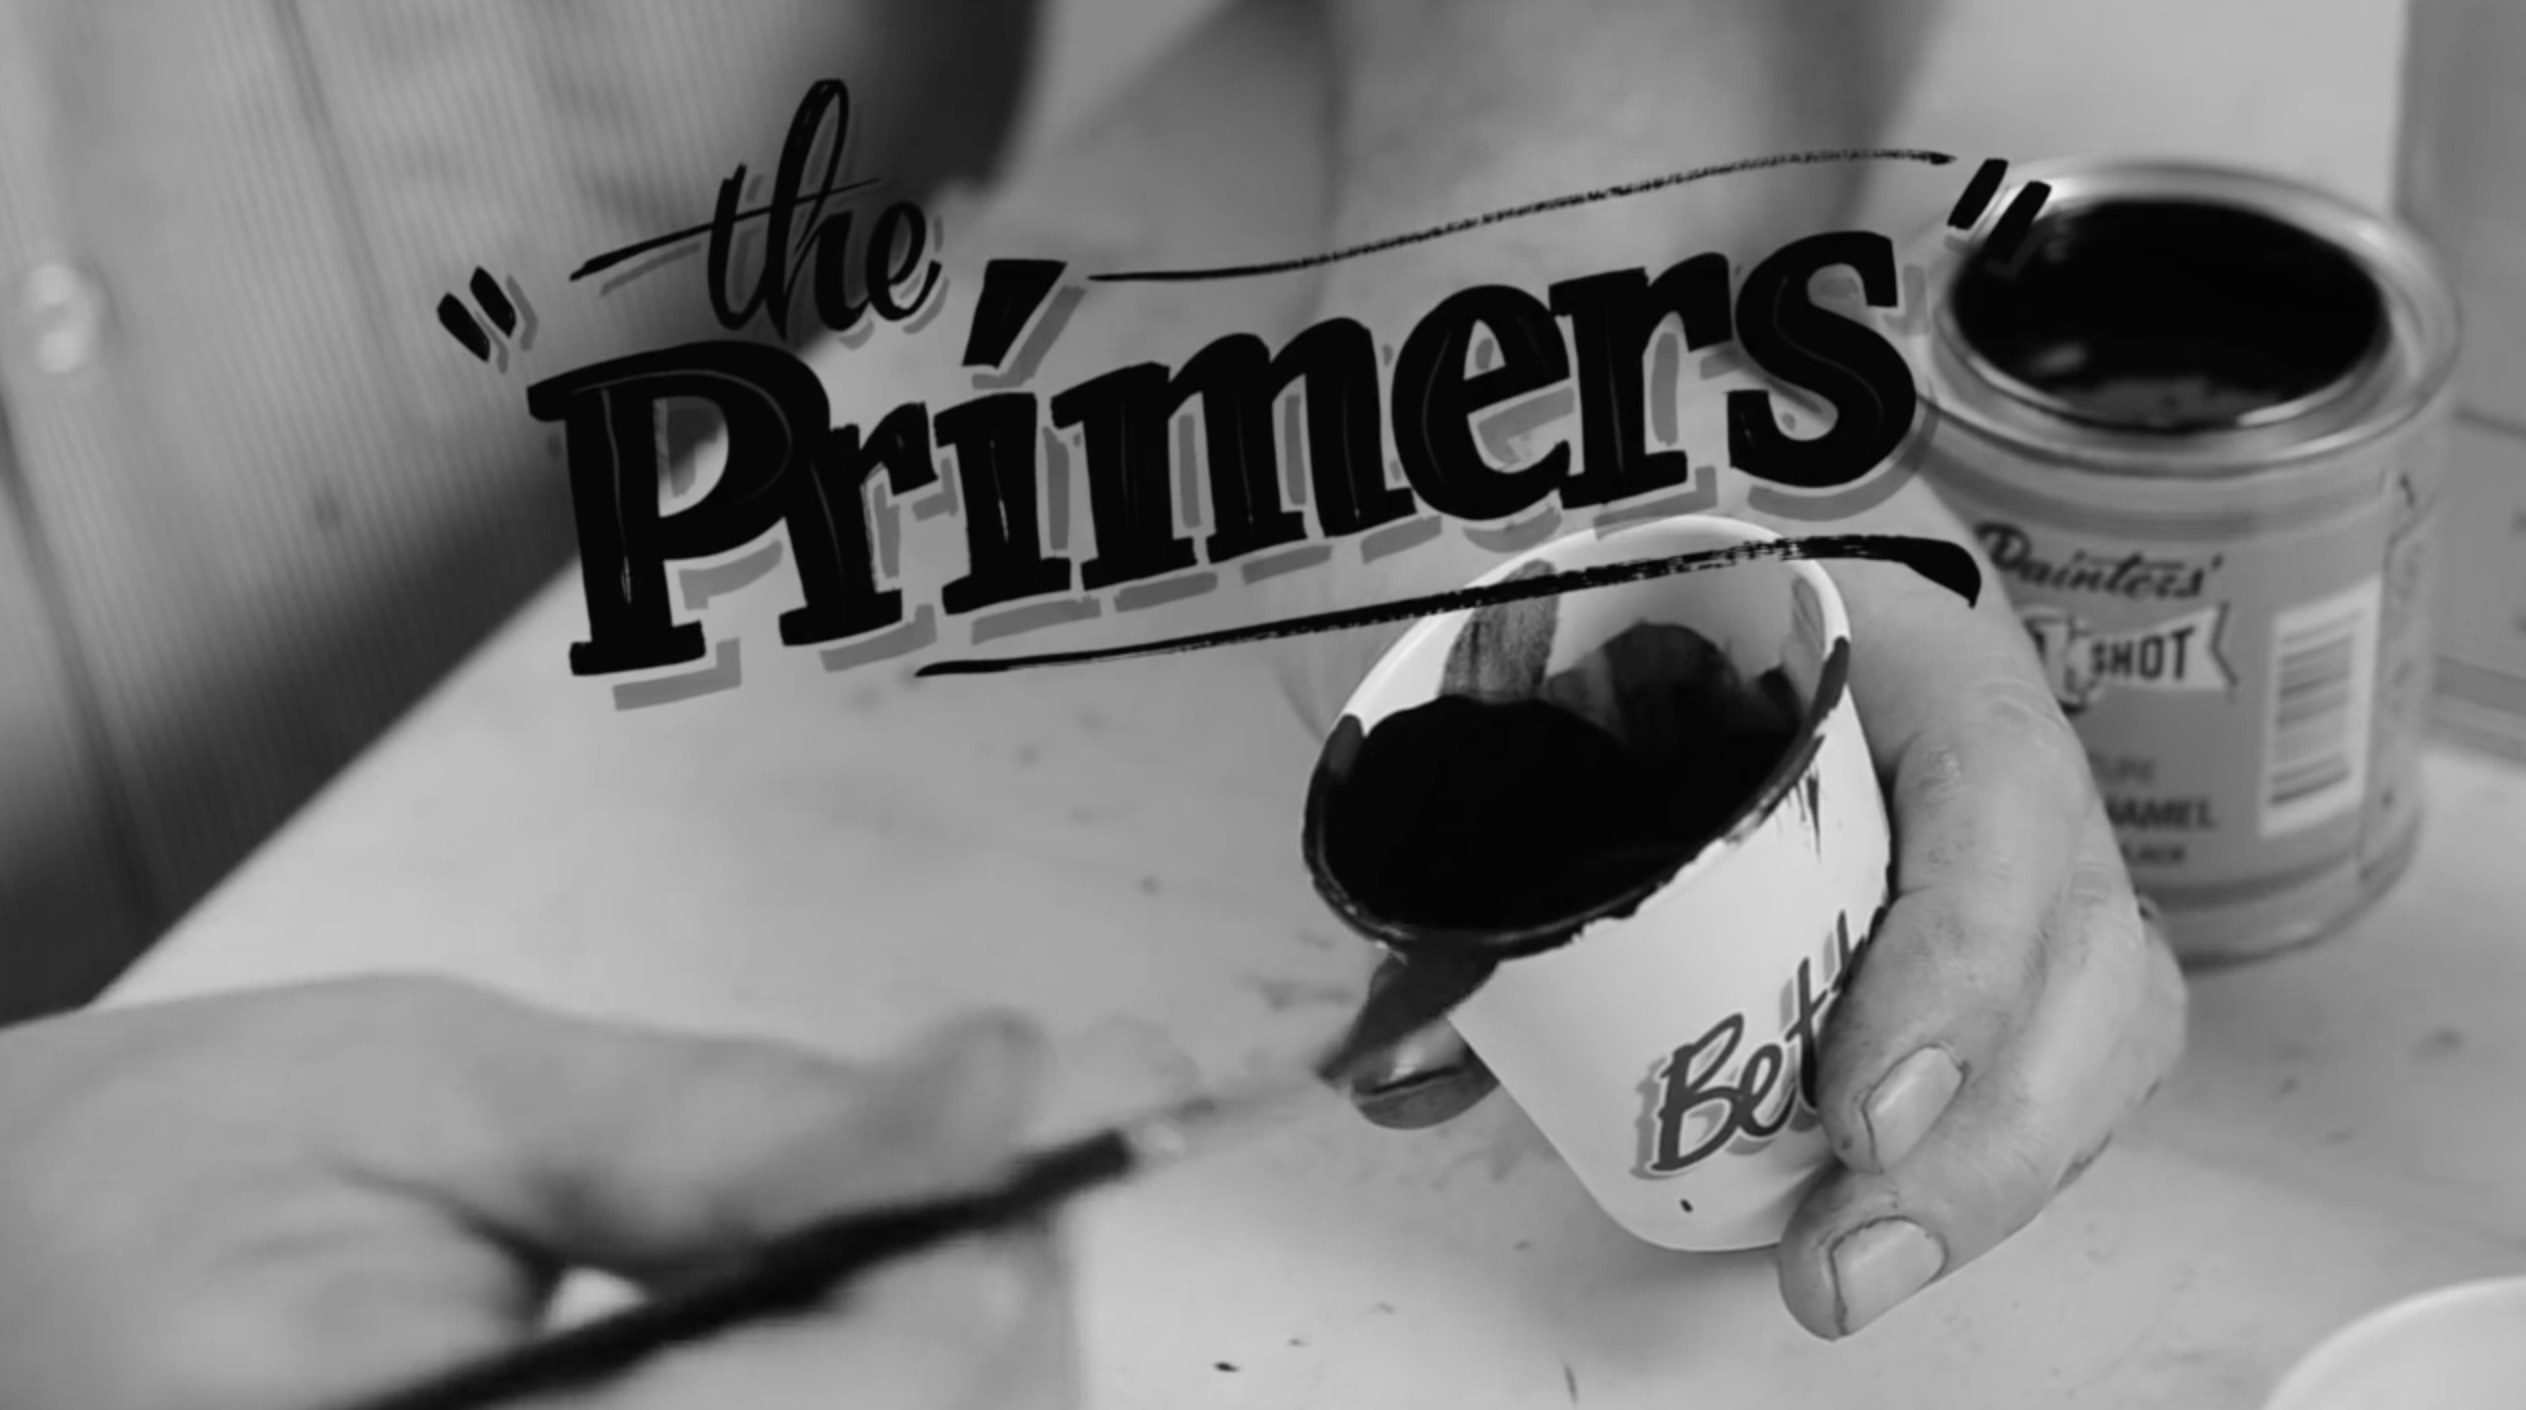 The Primers sign painting - Mike Meyer Better Letters A.S Handover - Lettering Tutorial